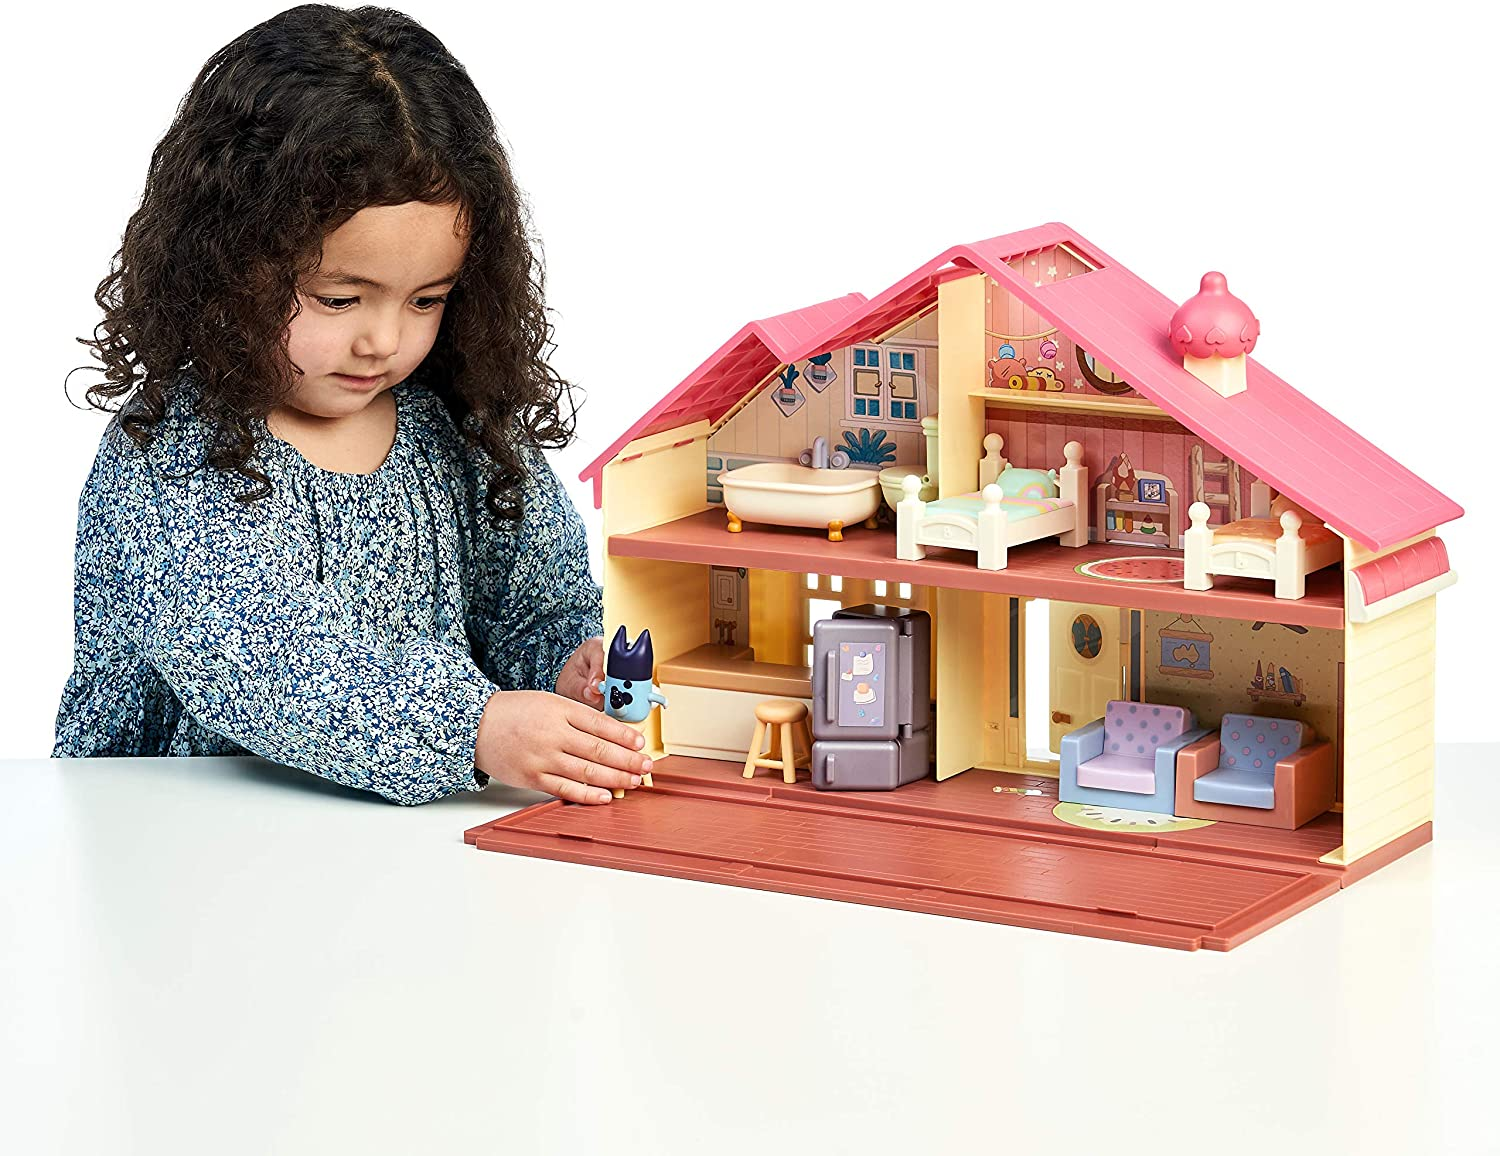 Bluey Family Home Playset - Little girl setting up the Furniture & poseable Figure